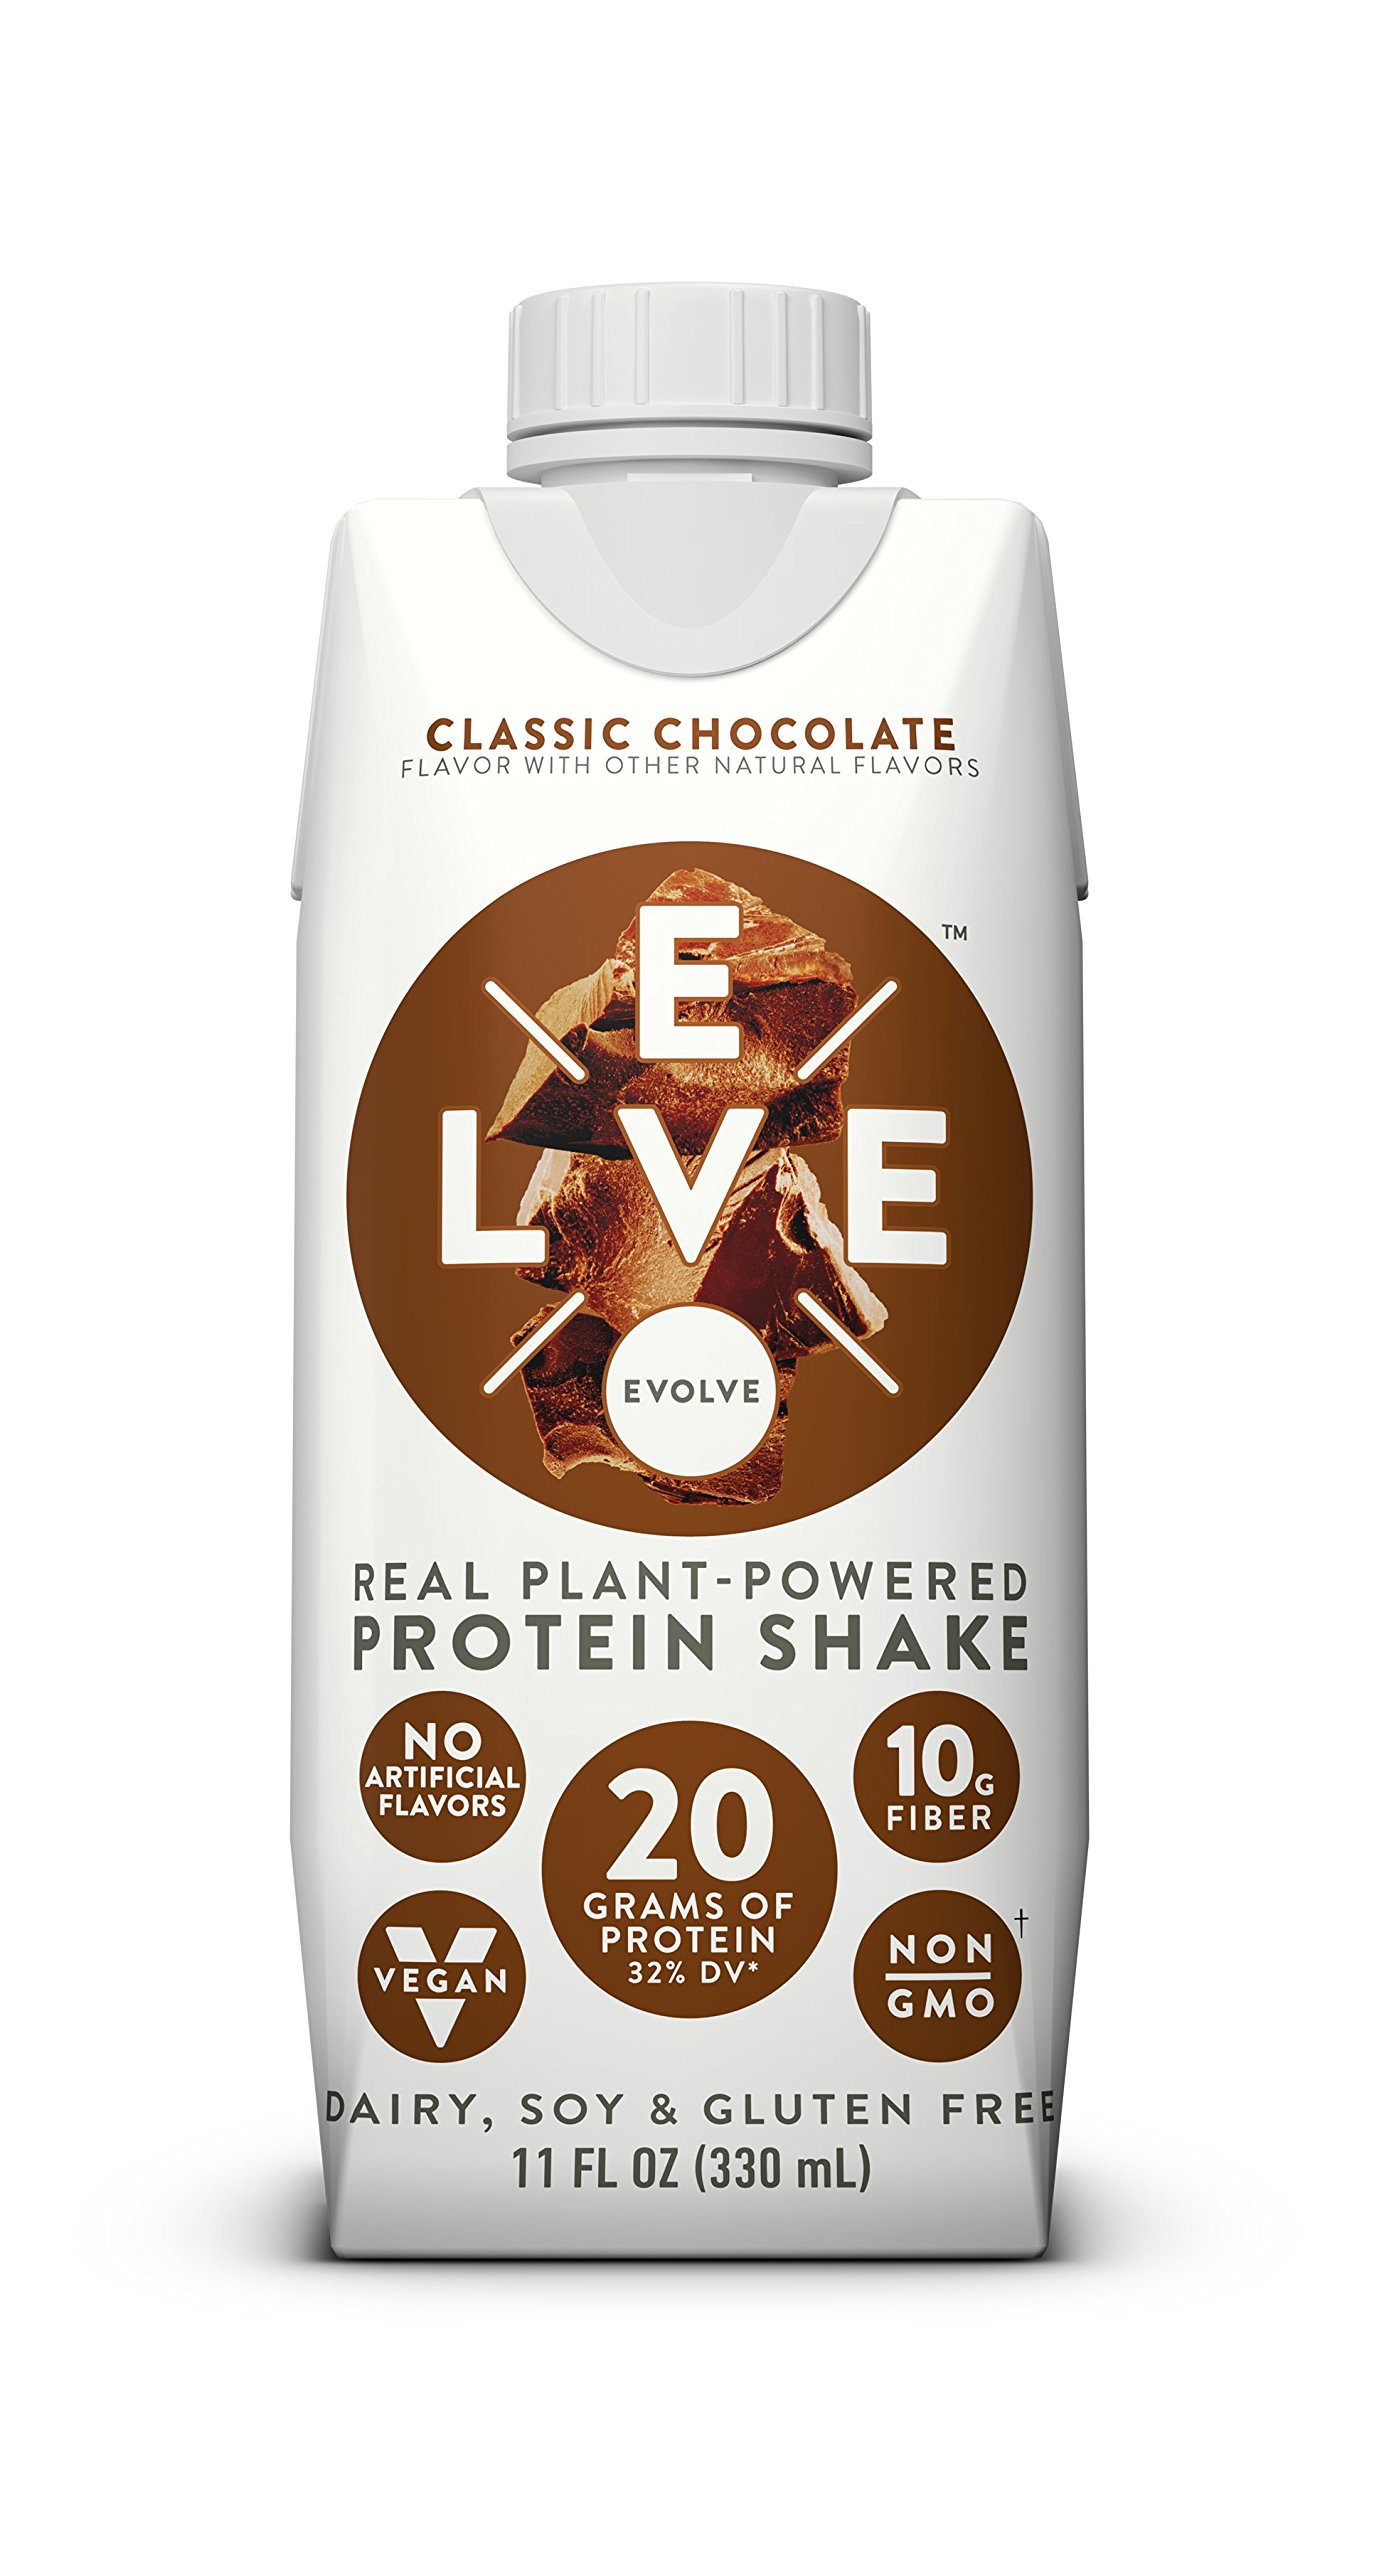 Evolve Protein Shake, Classic Chocolate, 20g Protein, 11 Fl Oz, Pack of 12 by EVOLVE